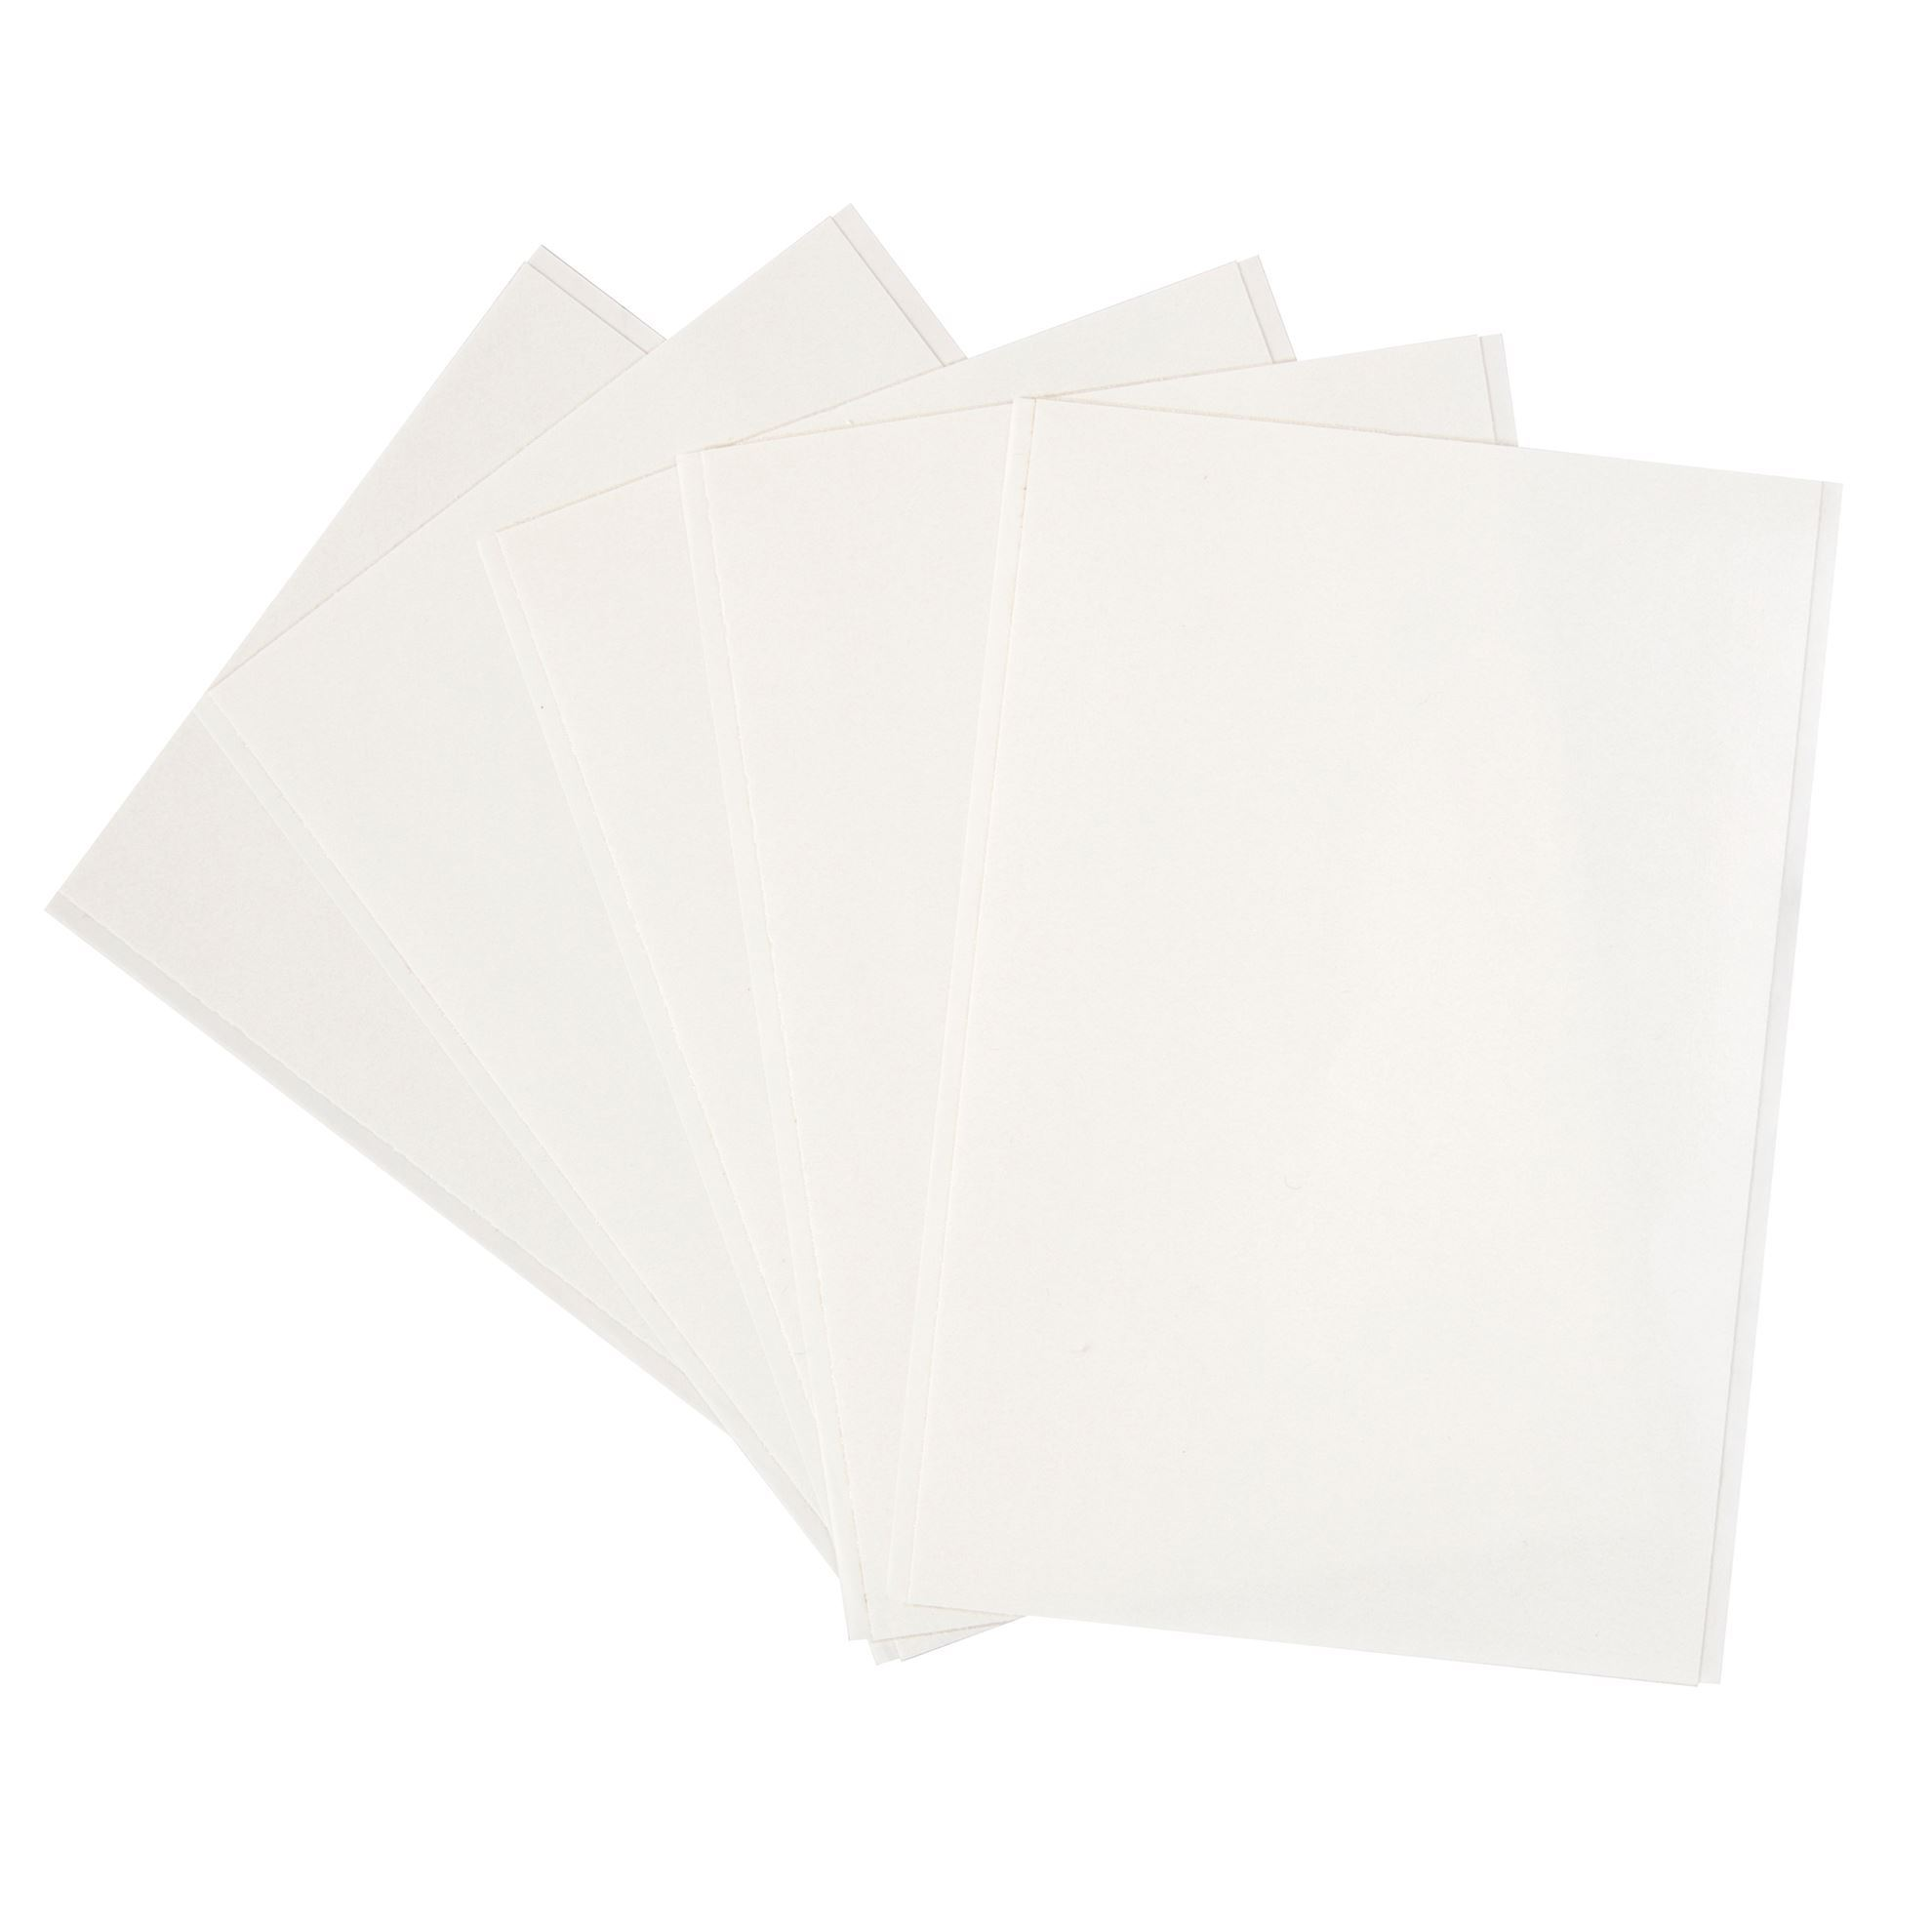 Aleene's Instant Tacky Double-Sided Adhesive Sheets content